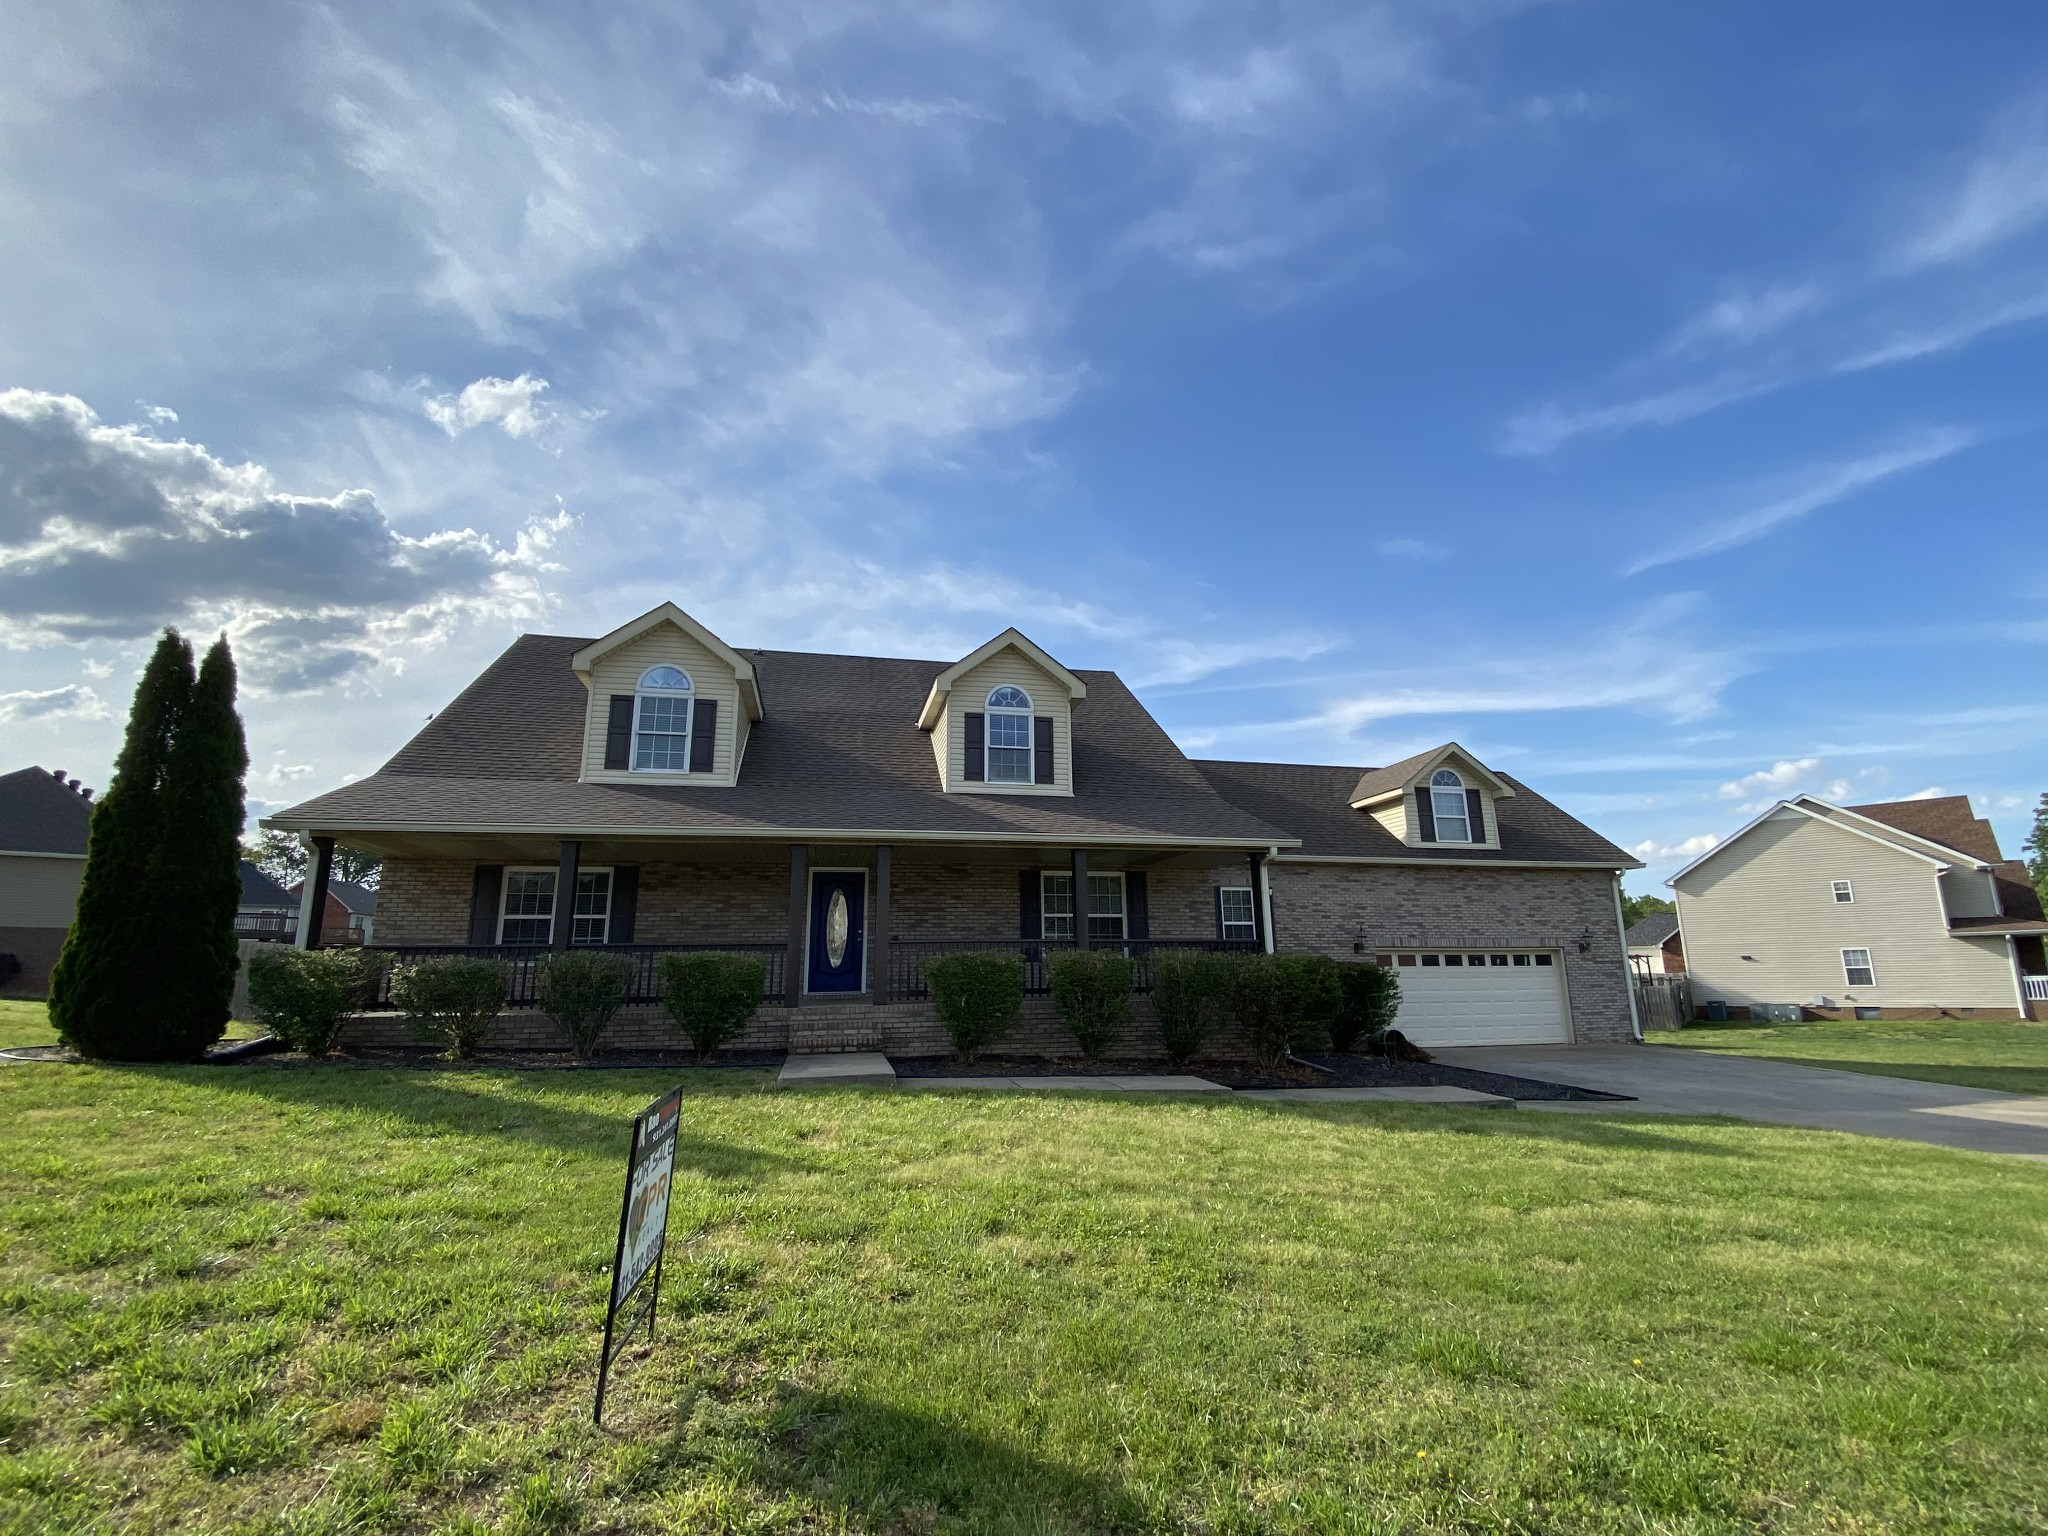 982 Granite Trl Property Photo - Adams, TN real estate listing